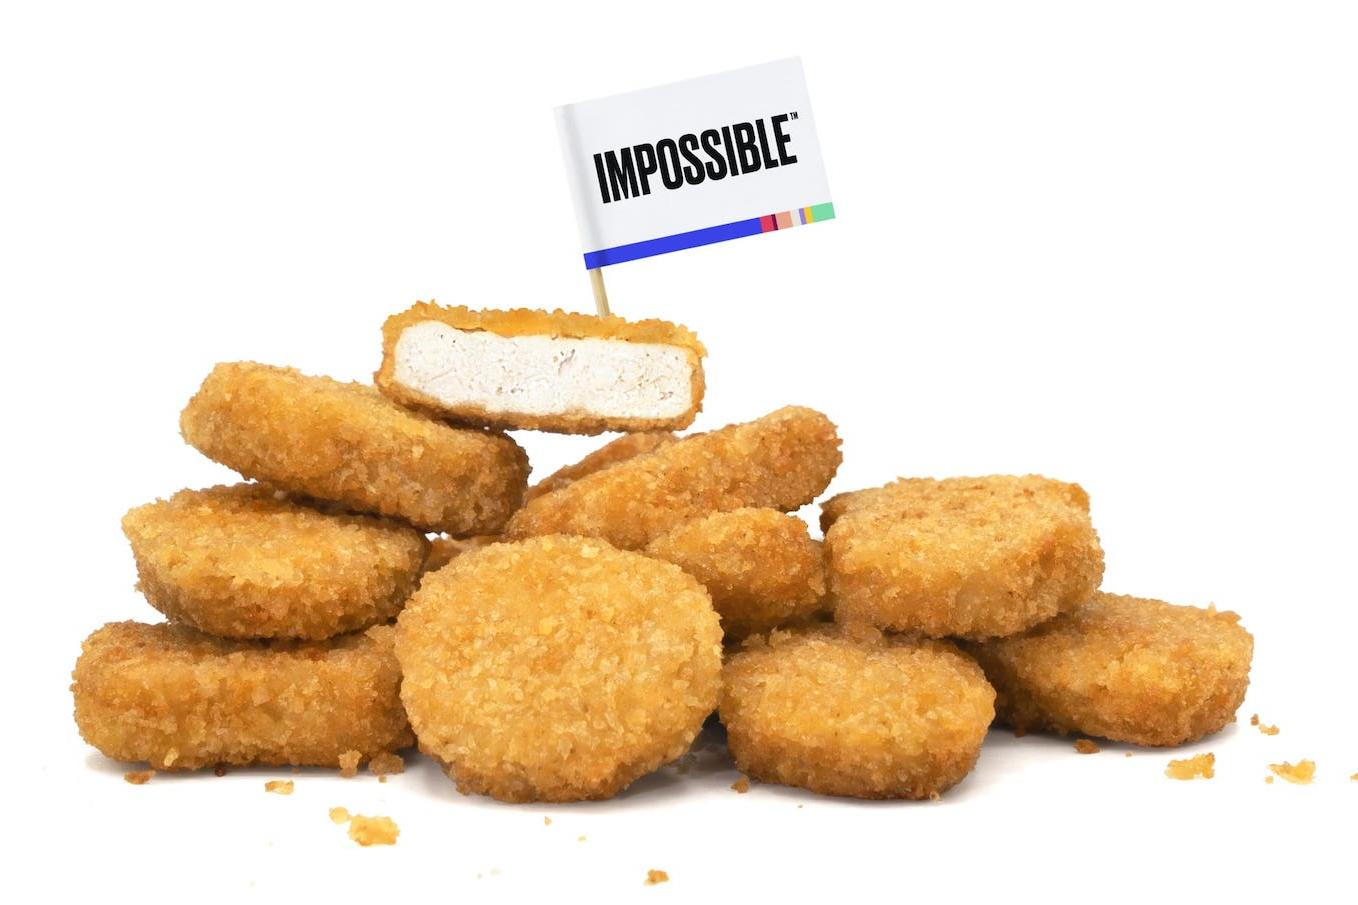 Impossible Chicken Nuggets new plant-based foods